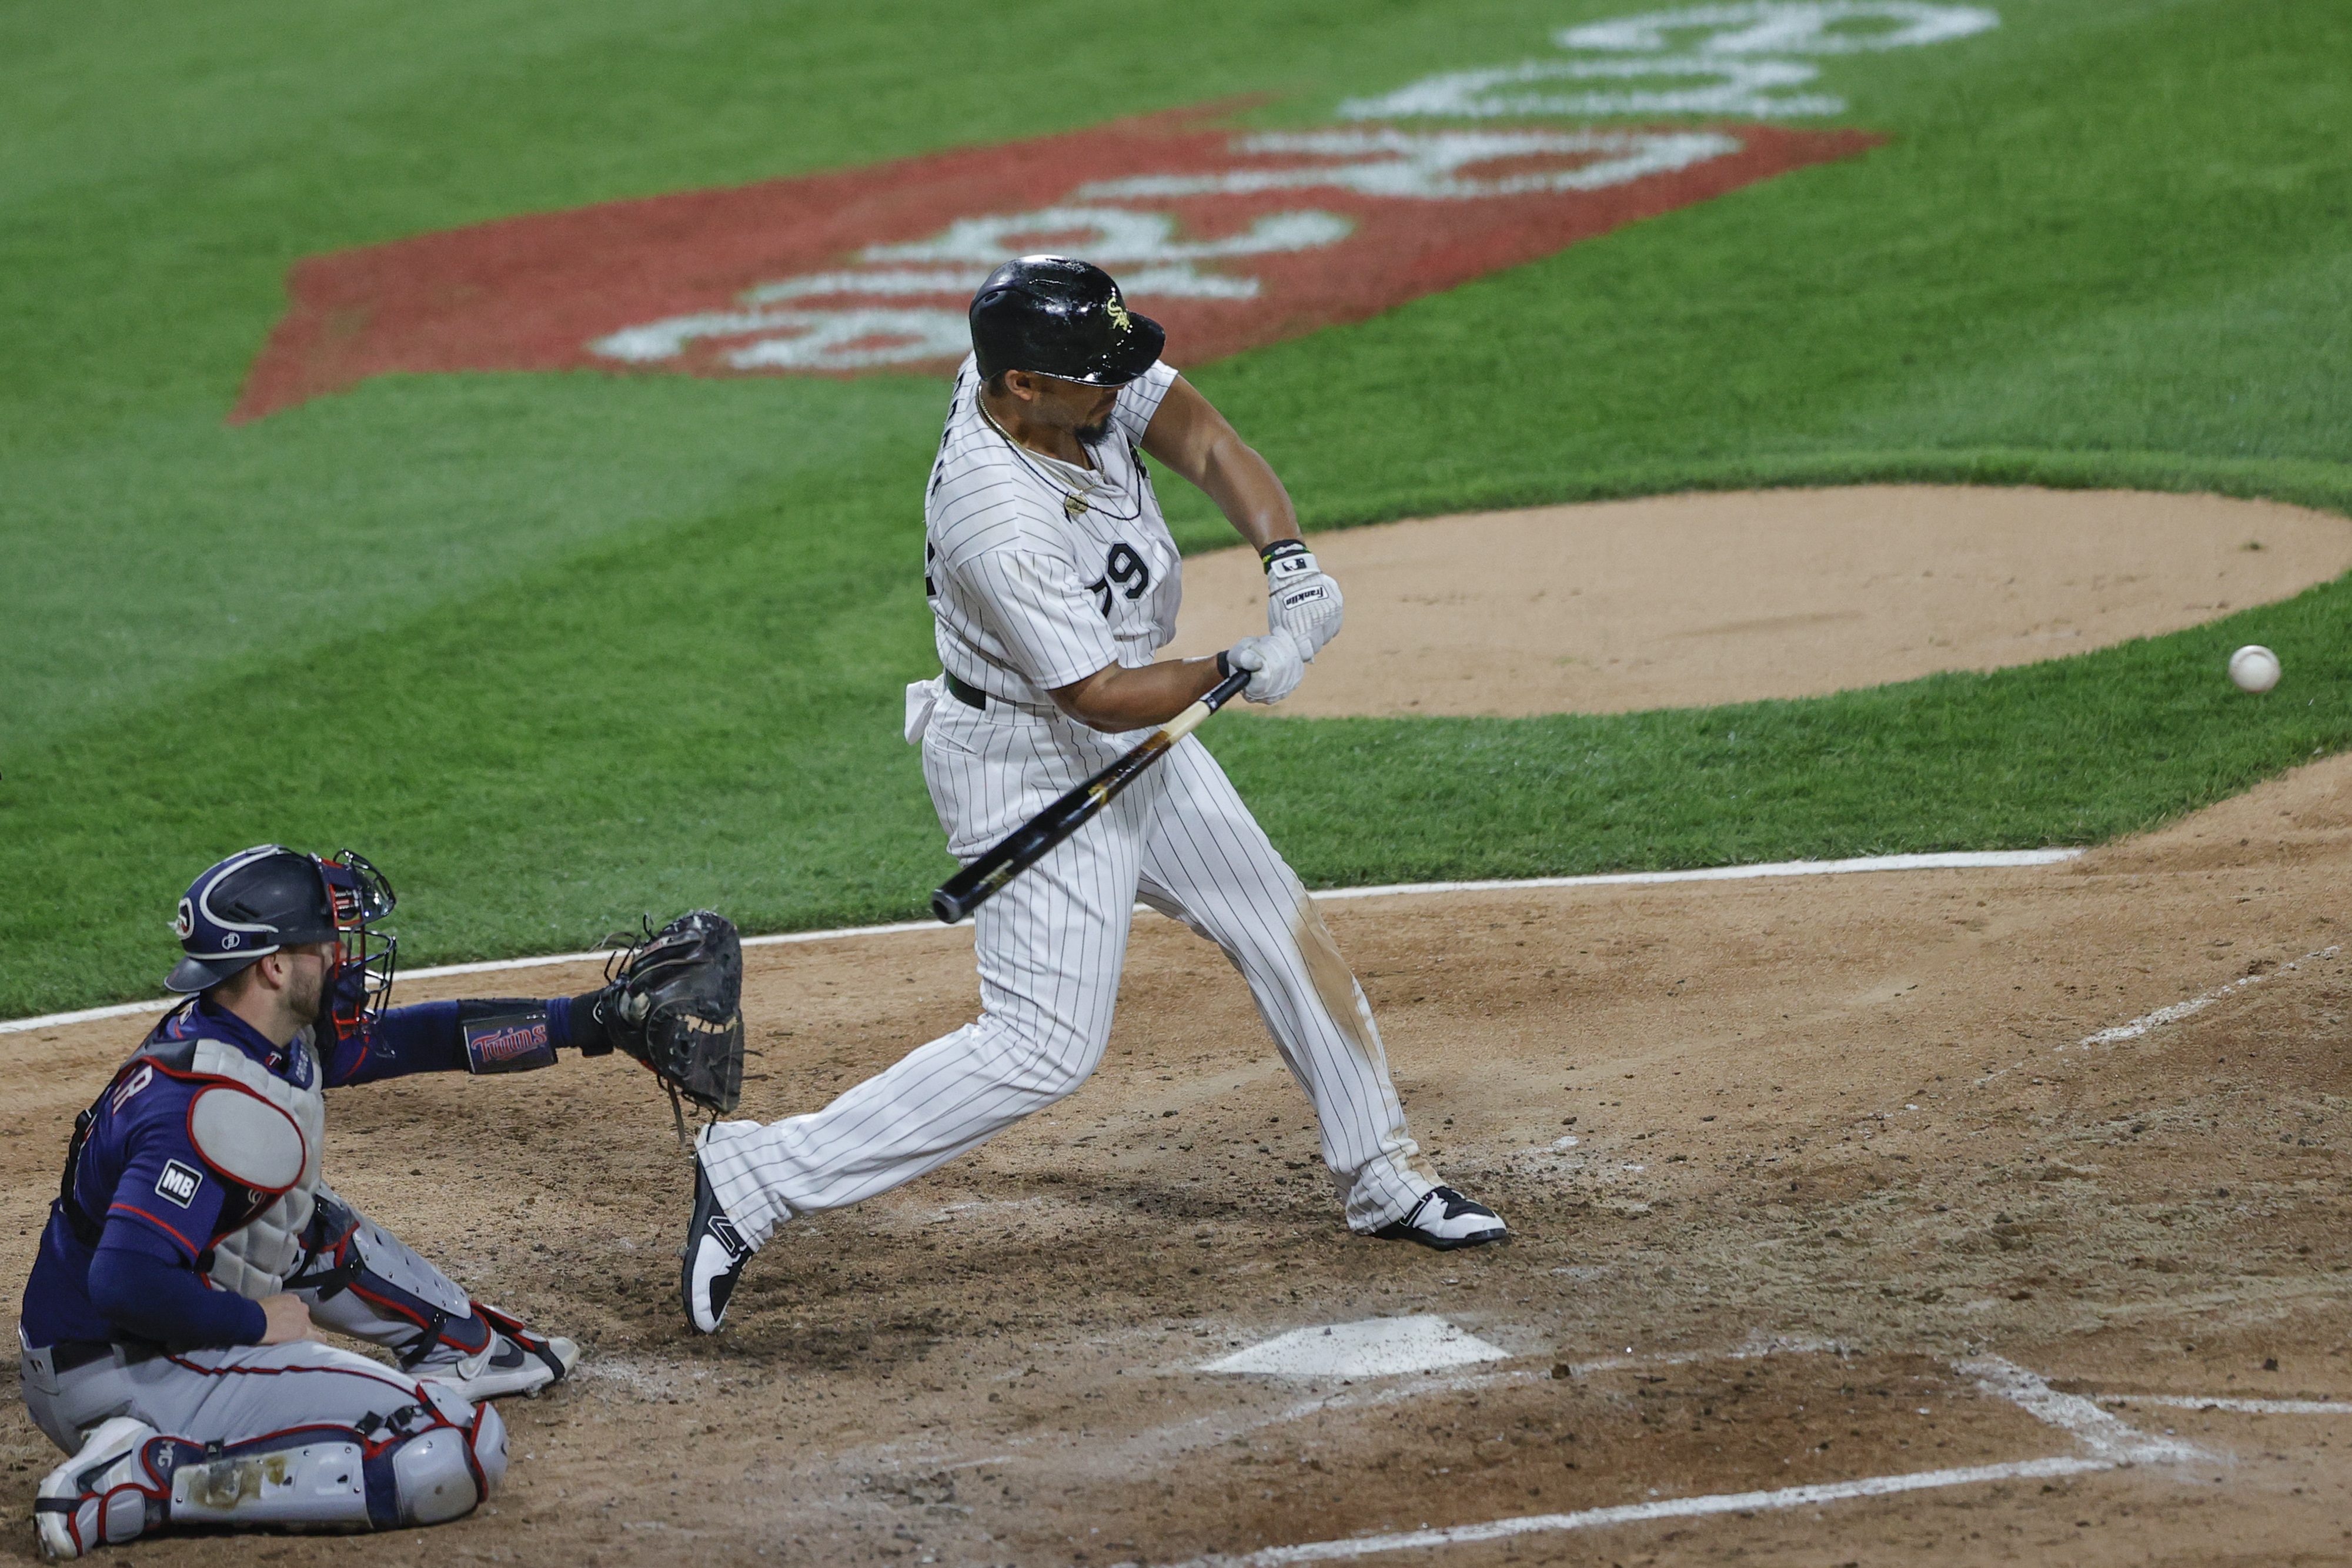 May 12, 2021; Chicago, Illinois, USA; Chicago White Sox first baseman Jose Abreu (79) hits a two-run single against the Minnesota Twins during the fourth inning at Guaranteed Rate Field. / Kamil Krzaczynski-USA TODAY Sports